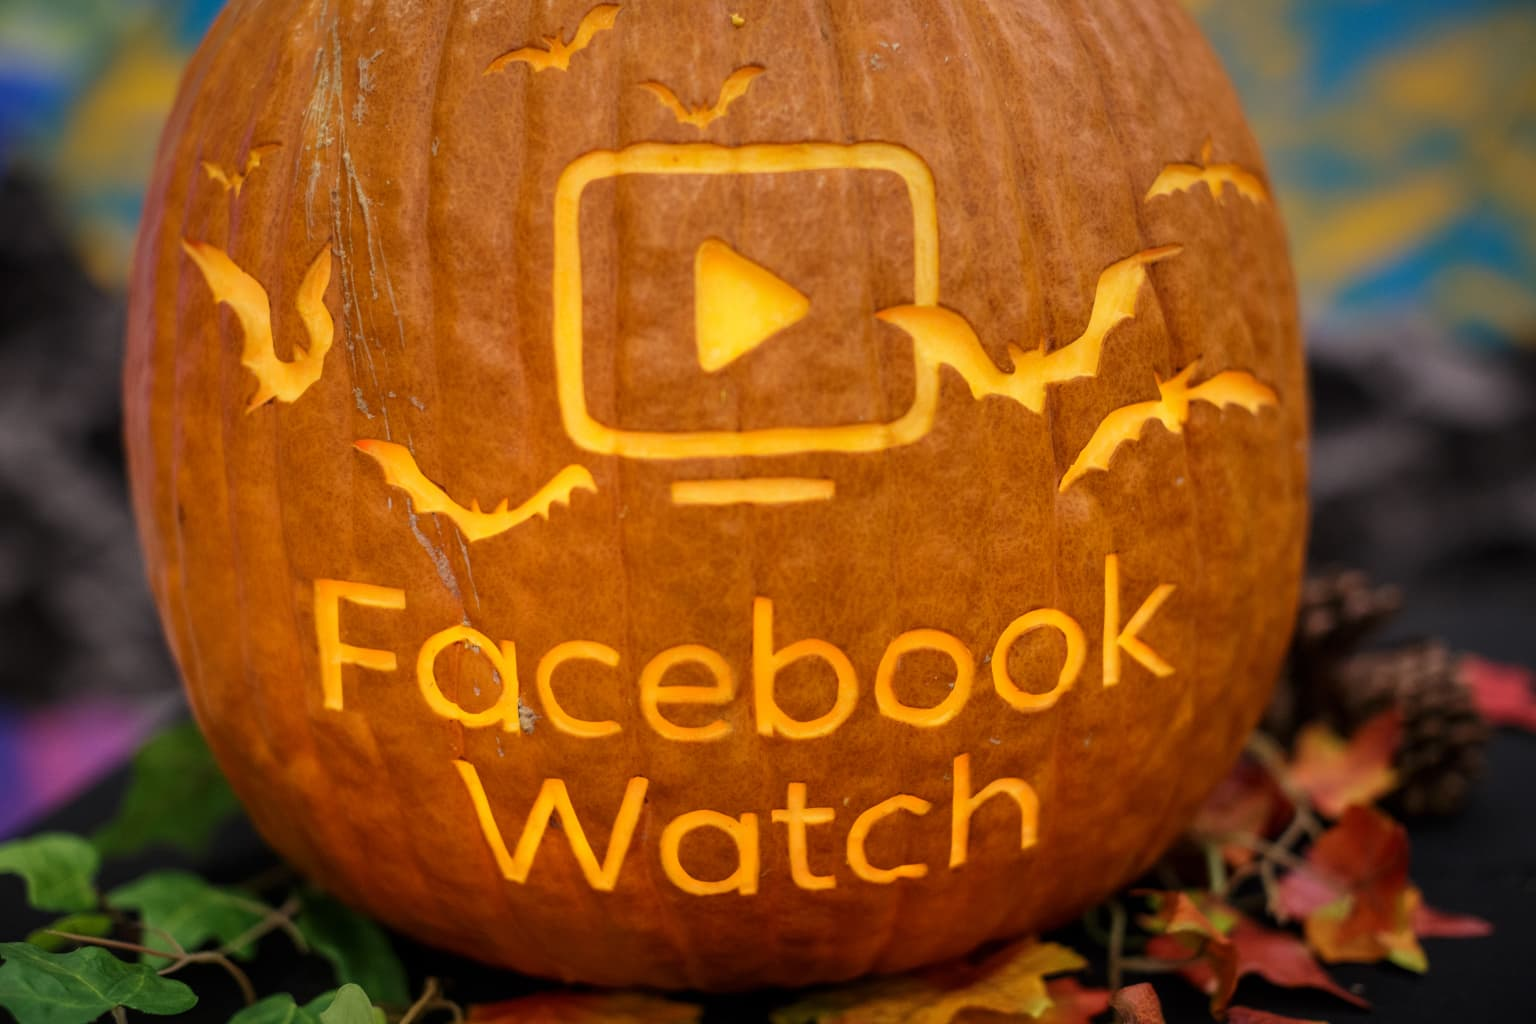 Facebook Watch In-Stream Reserve Halloween Event